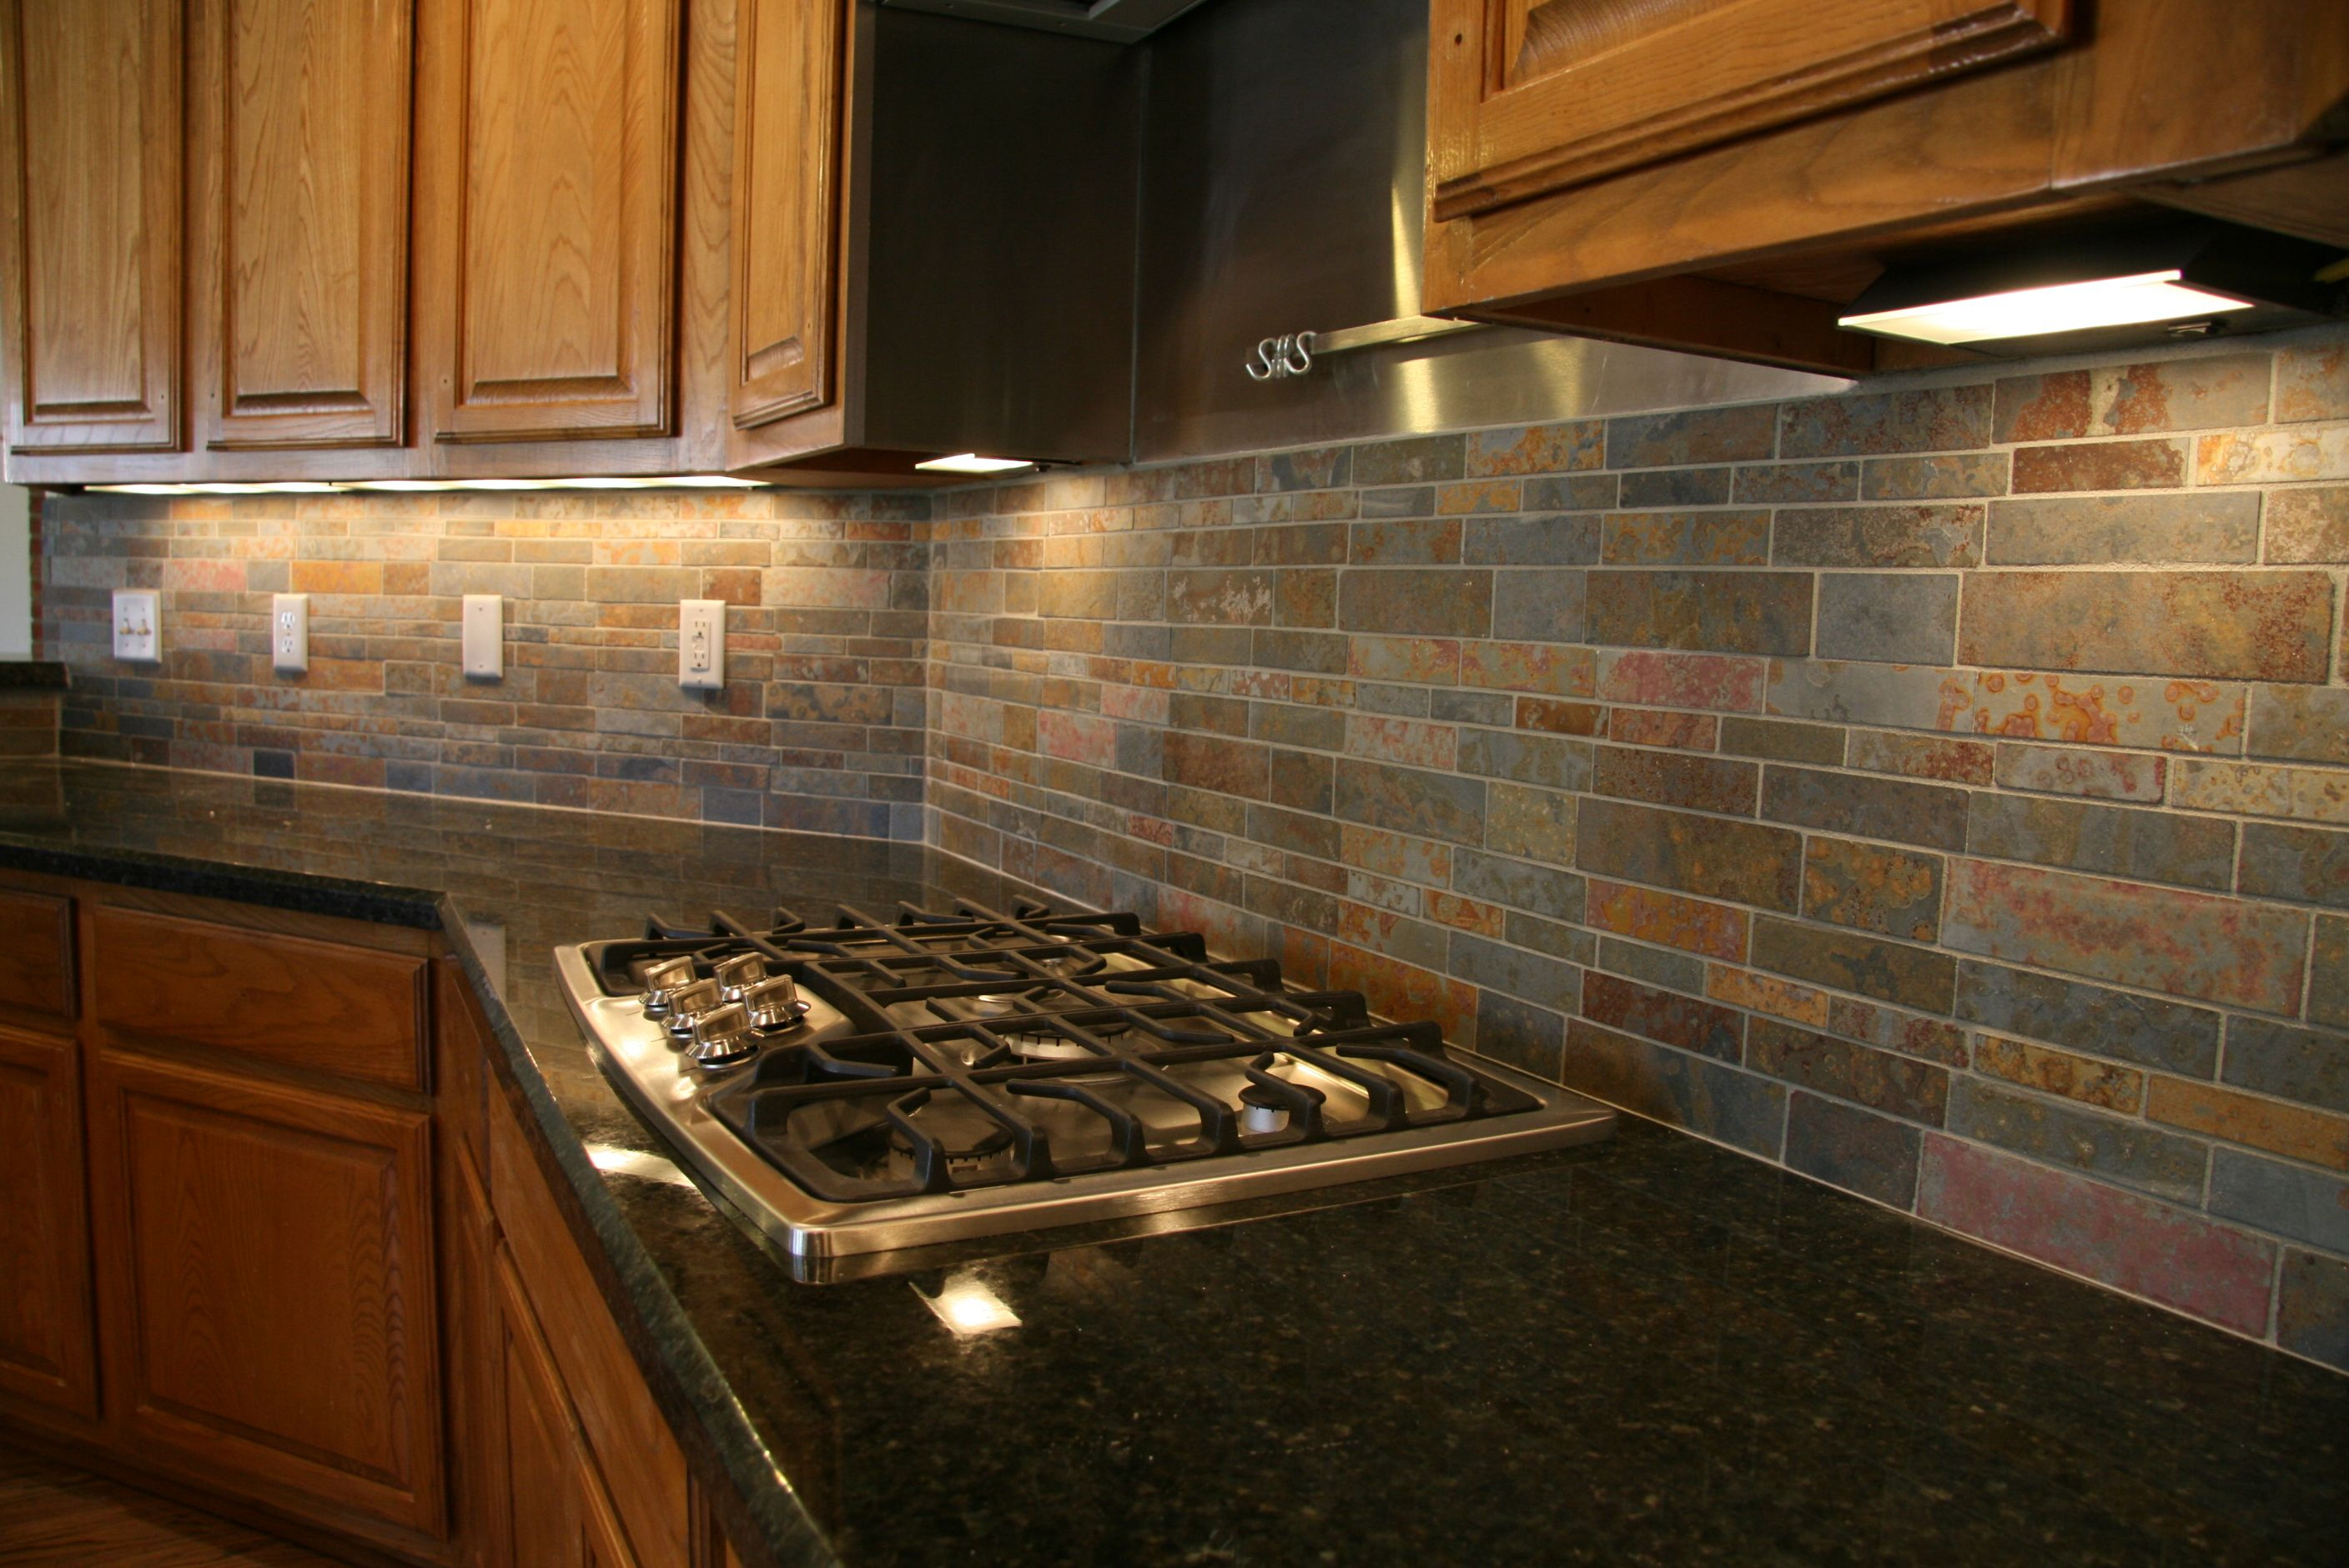 Black Granite Countertop Connected By Grey Mozaic Tile In Source